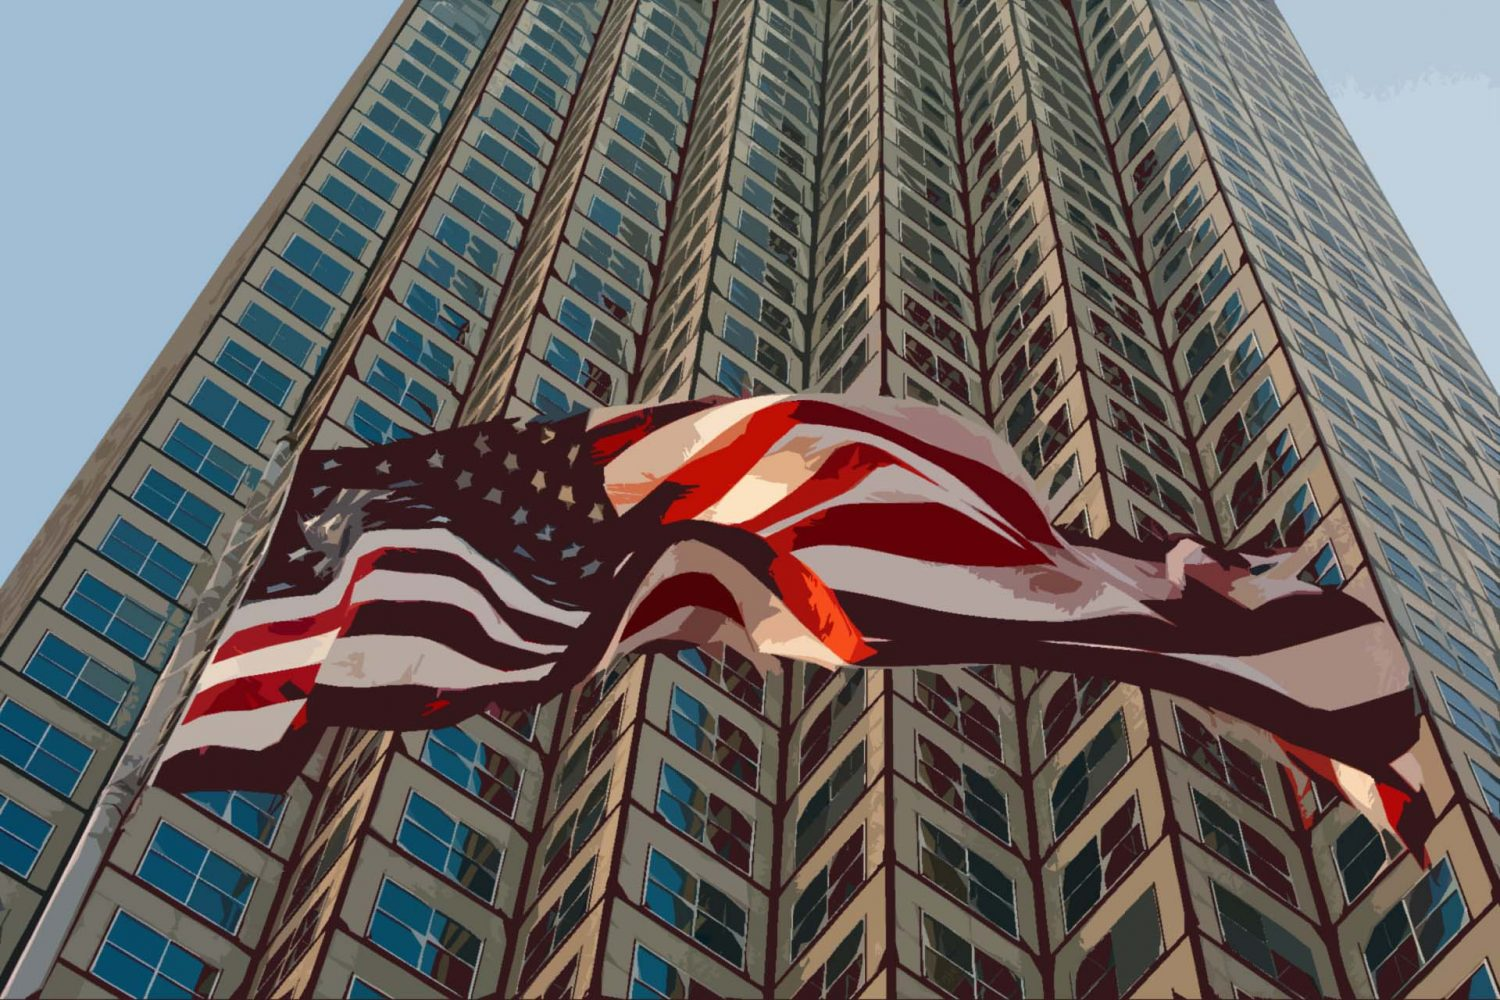 A photo illustration of a flag waving in front of a skyscraper.